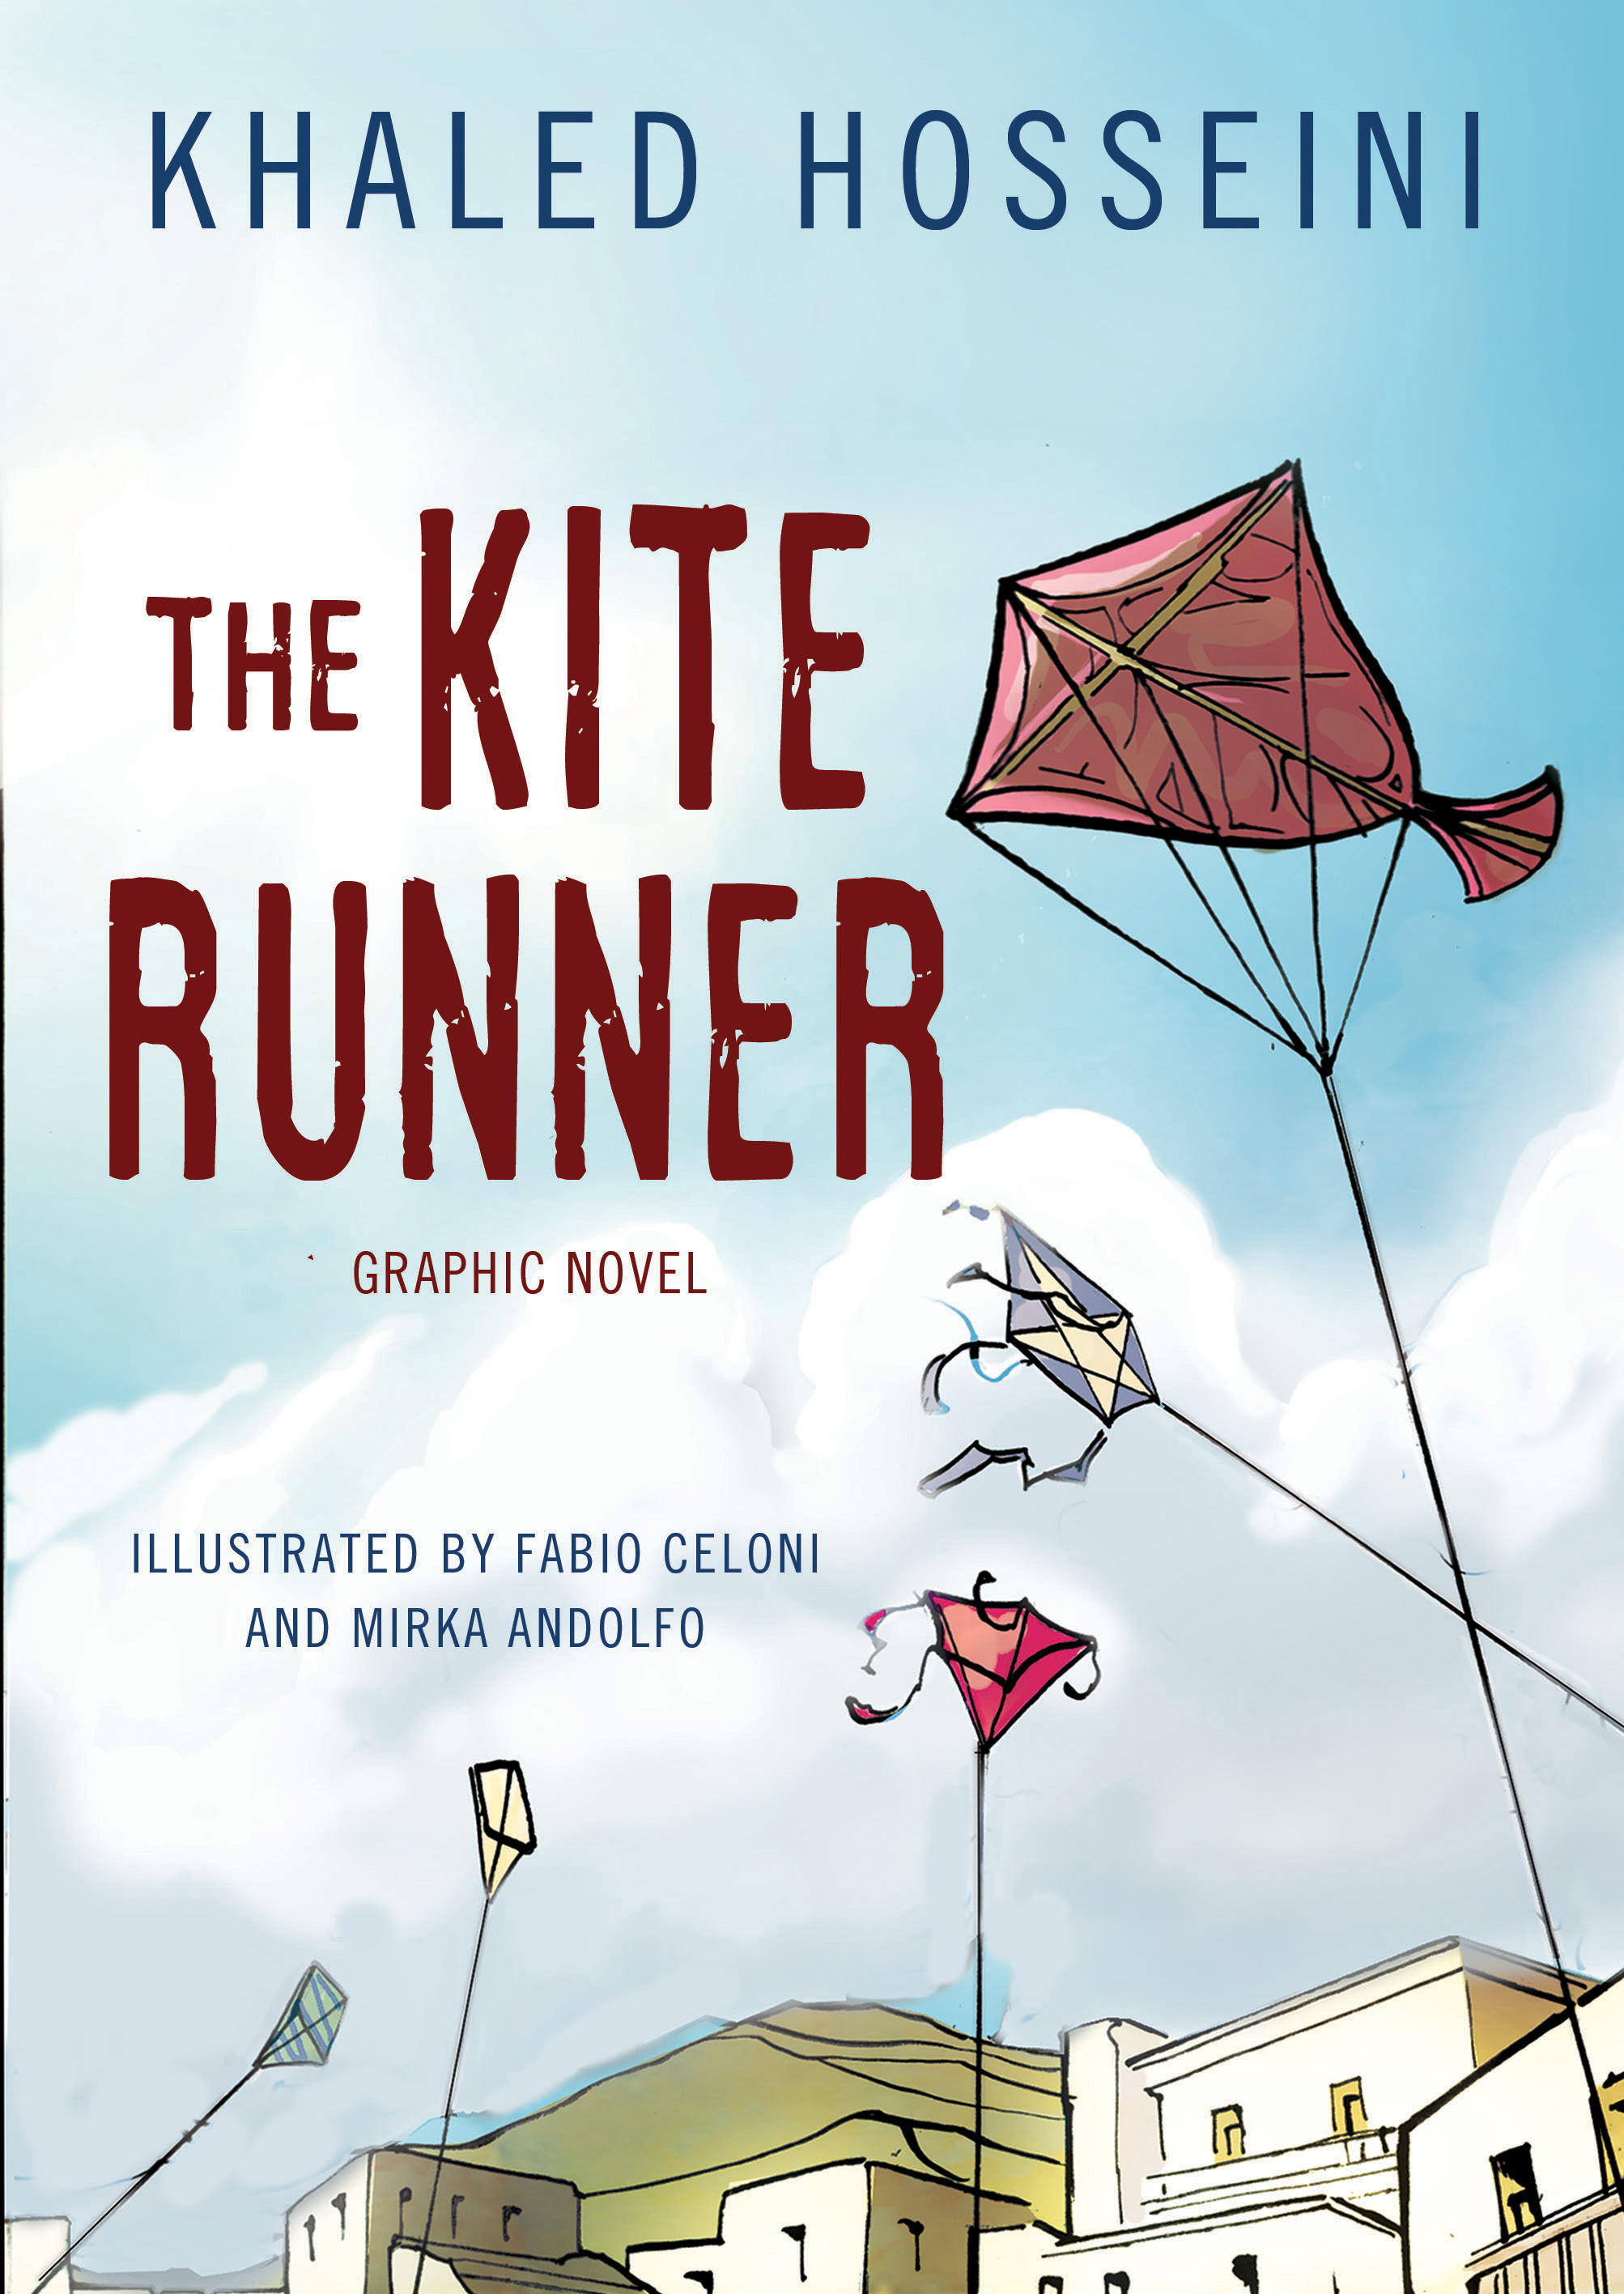 the kite runner religion browsing drawings on best ideas about the  the kite runner graphic novel khaled hosseini fabio celoni cover